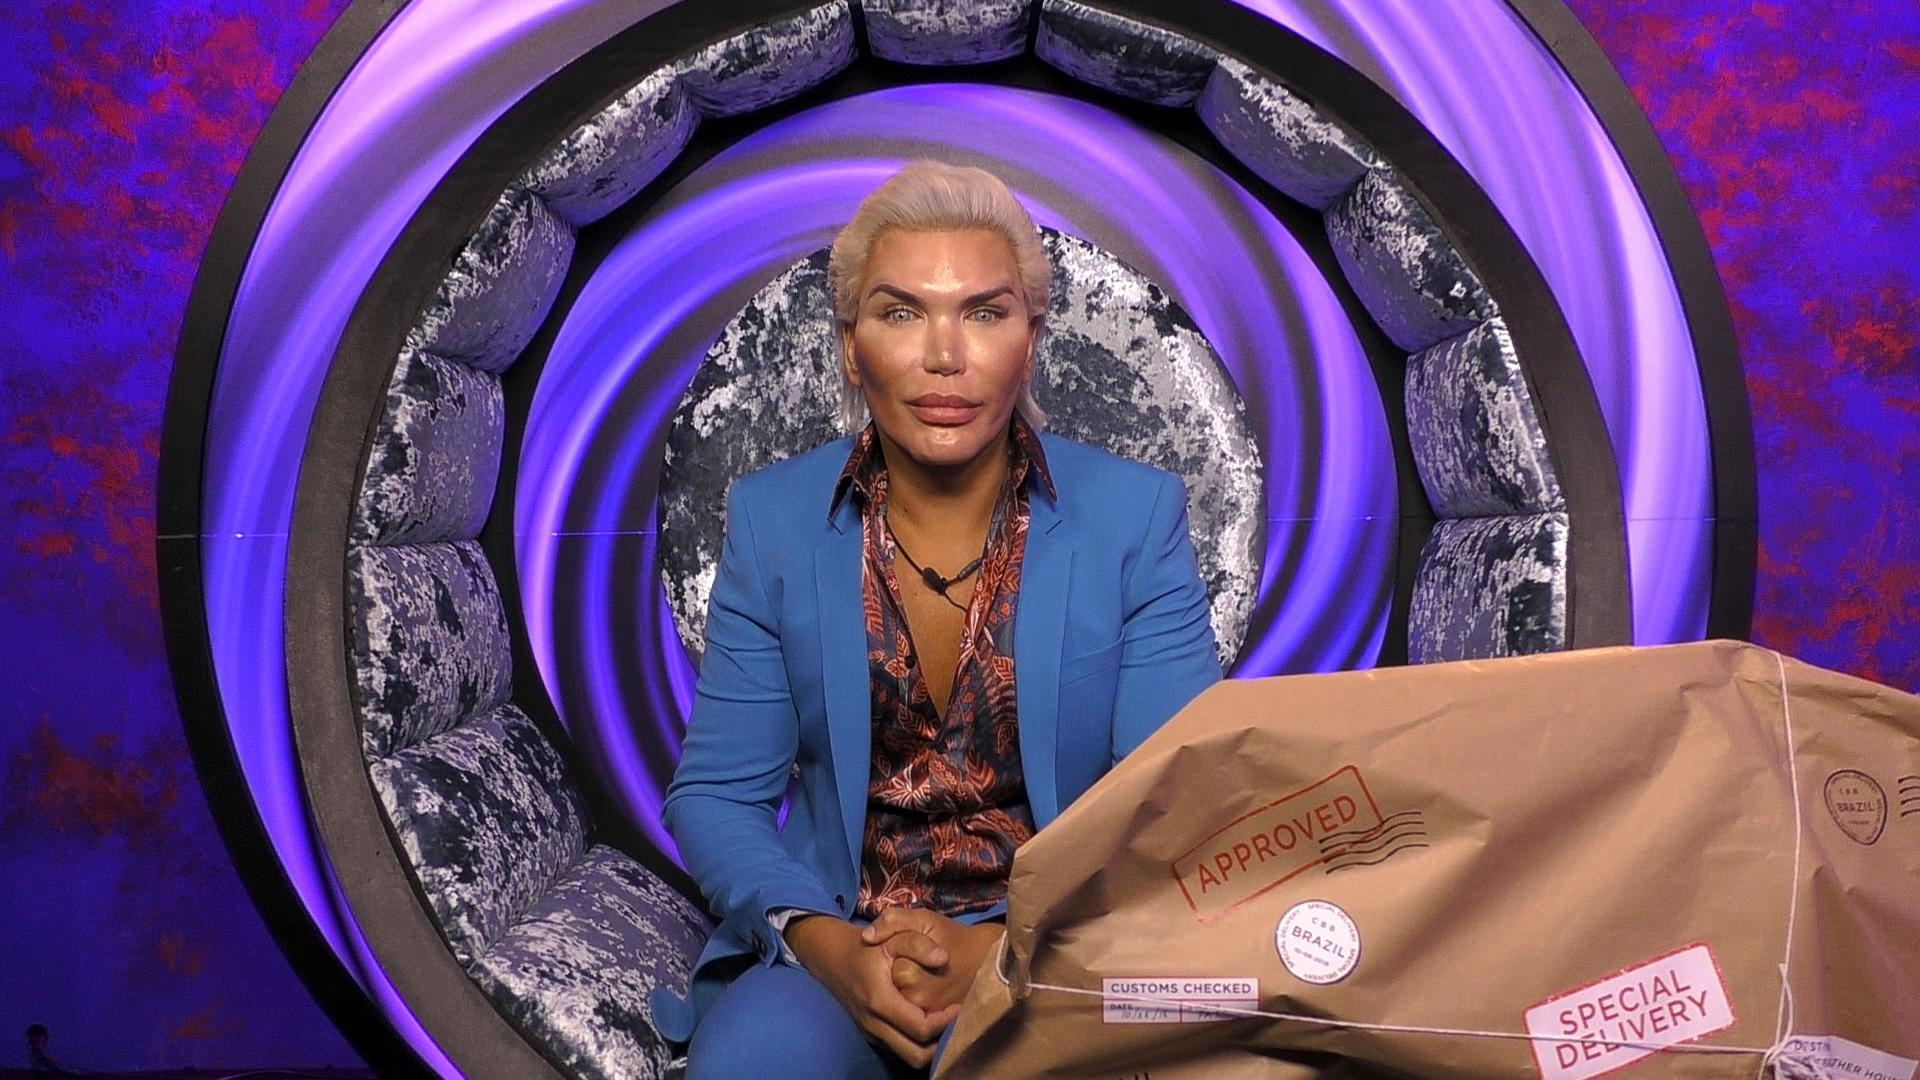 CBB - Rodrigo talks plastic surgery and says he wouldn't encourage anyone to follow his example